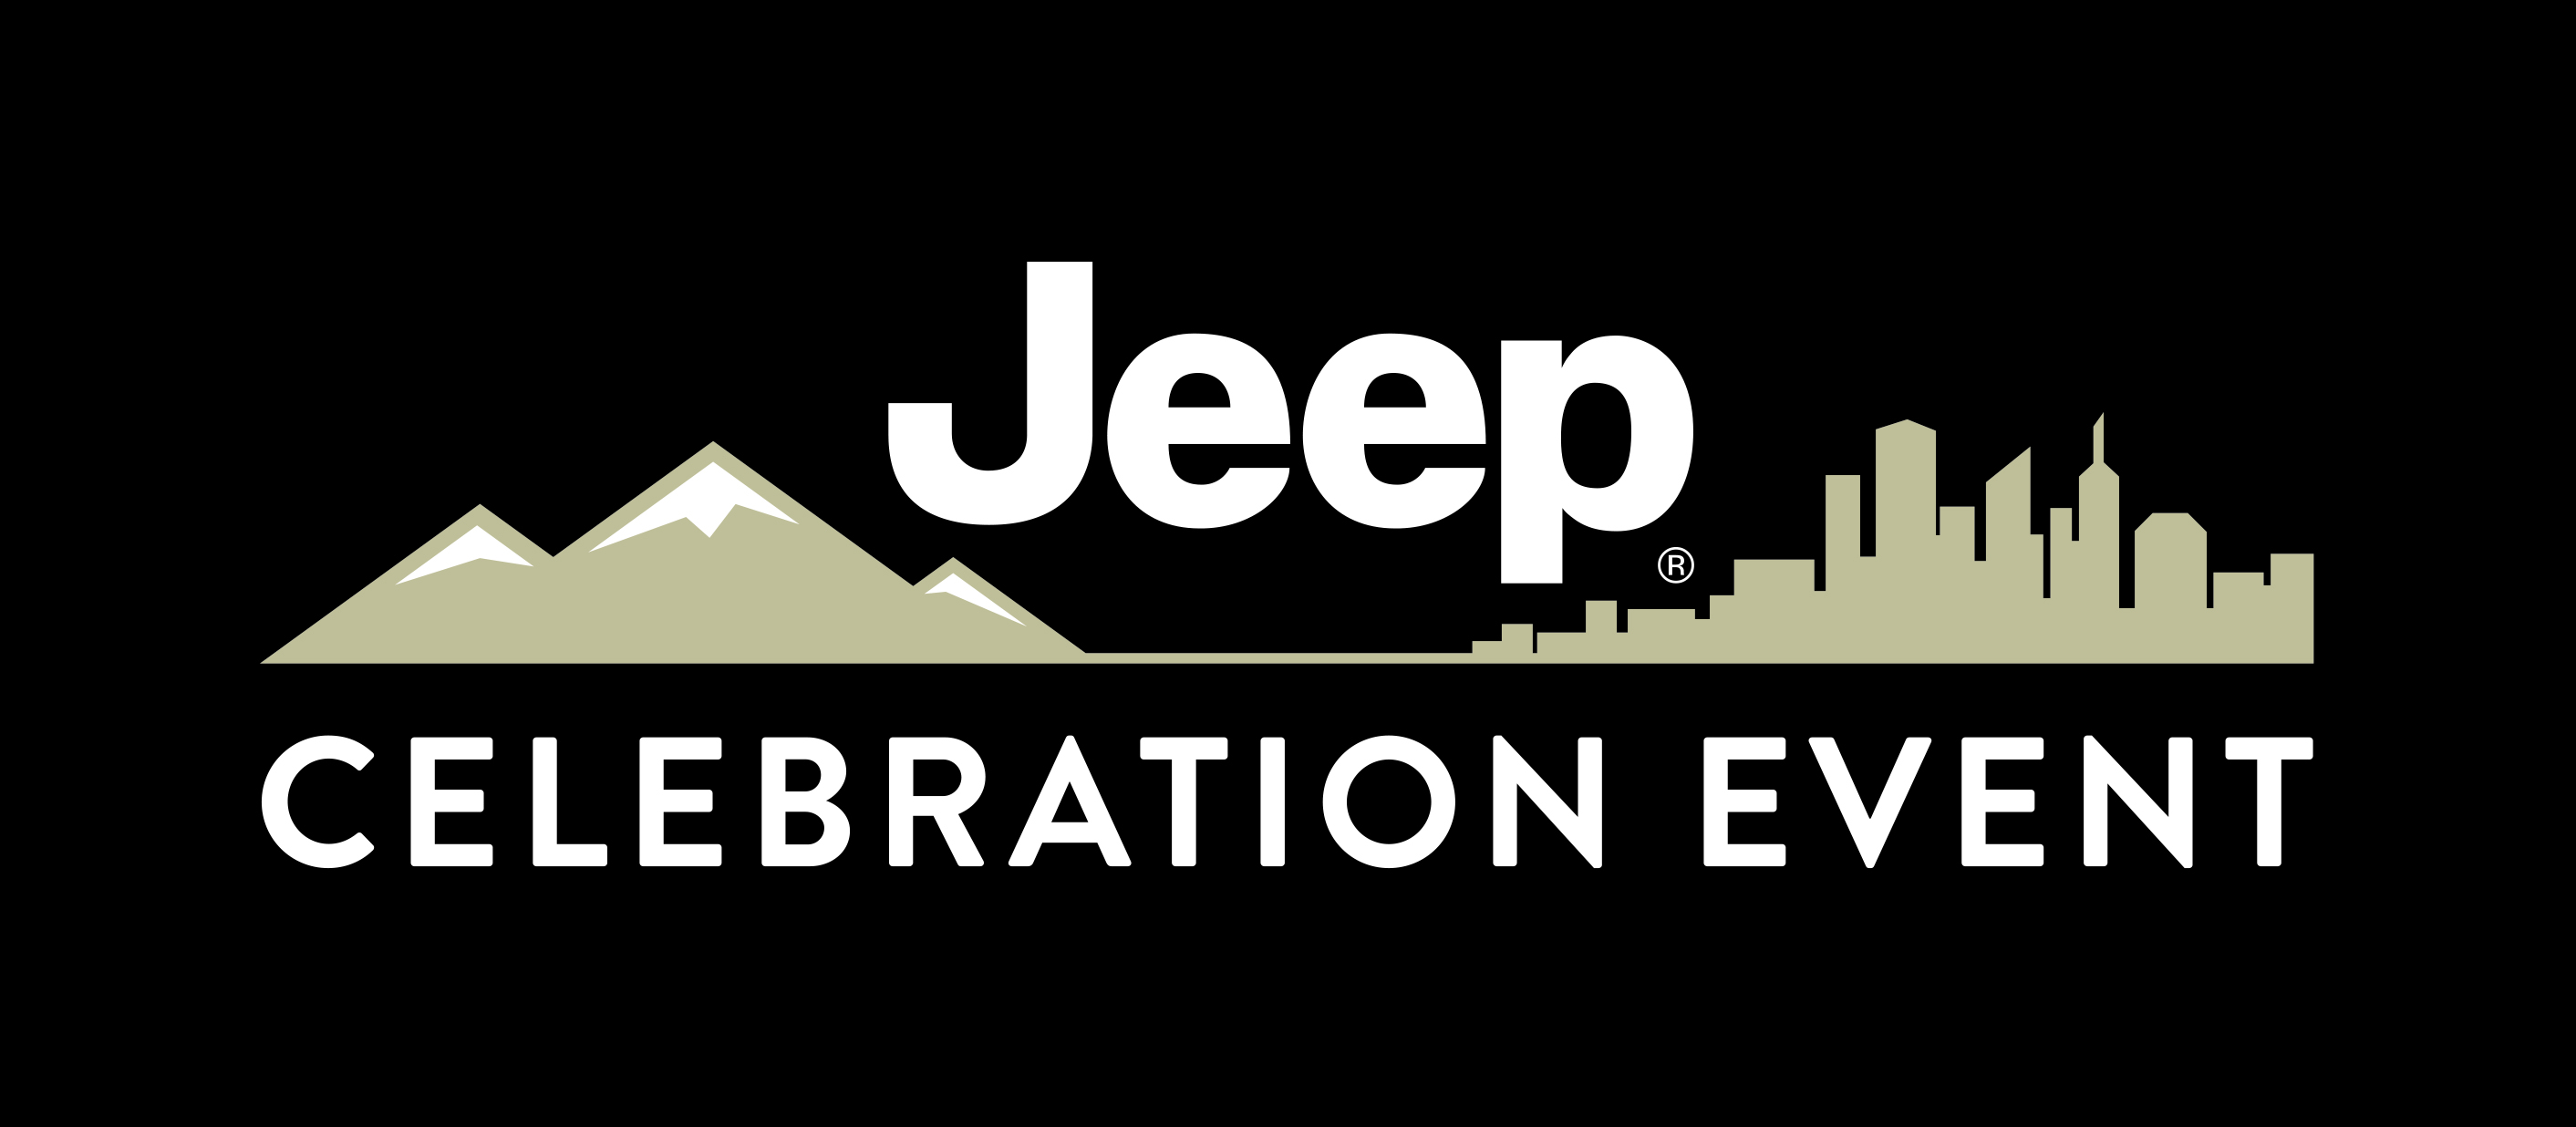 Jeep Celebration Event in Chelsea, MI